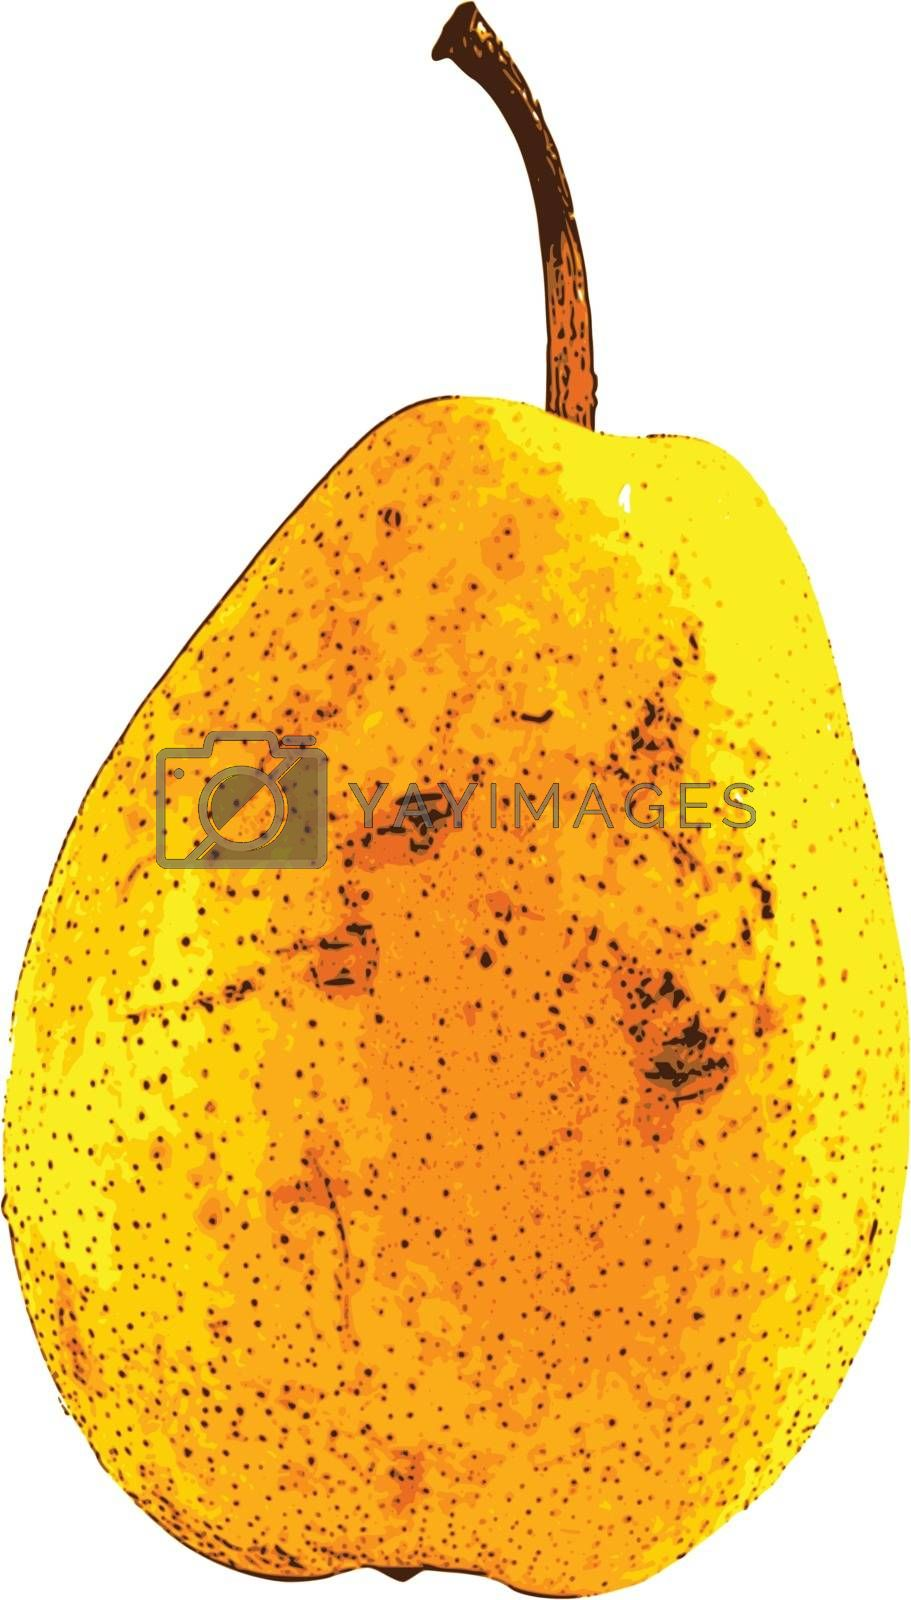 photorealistic, vector, traced illustration of pear